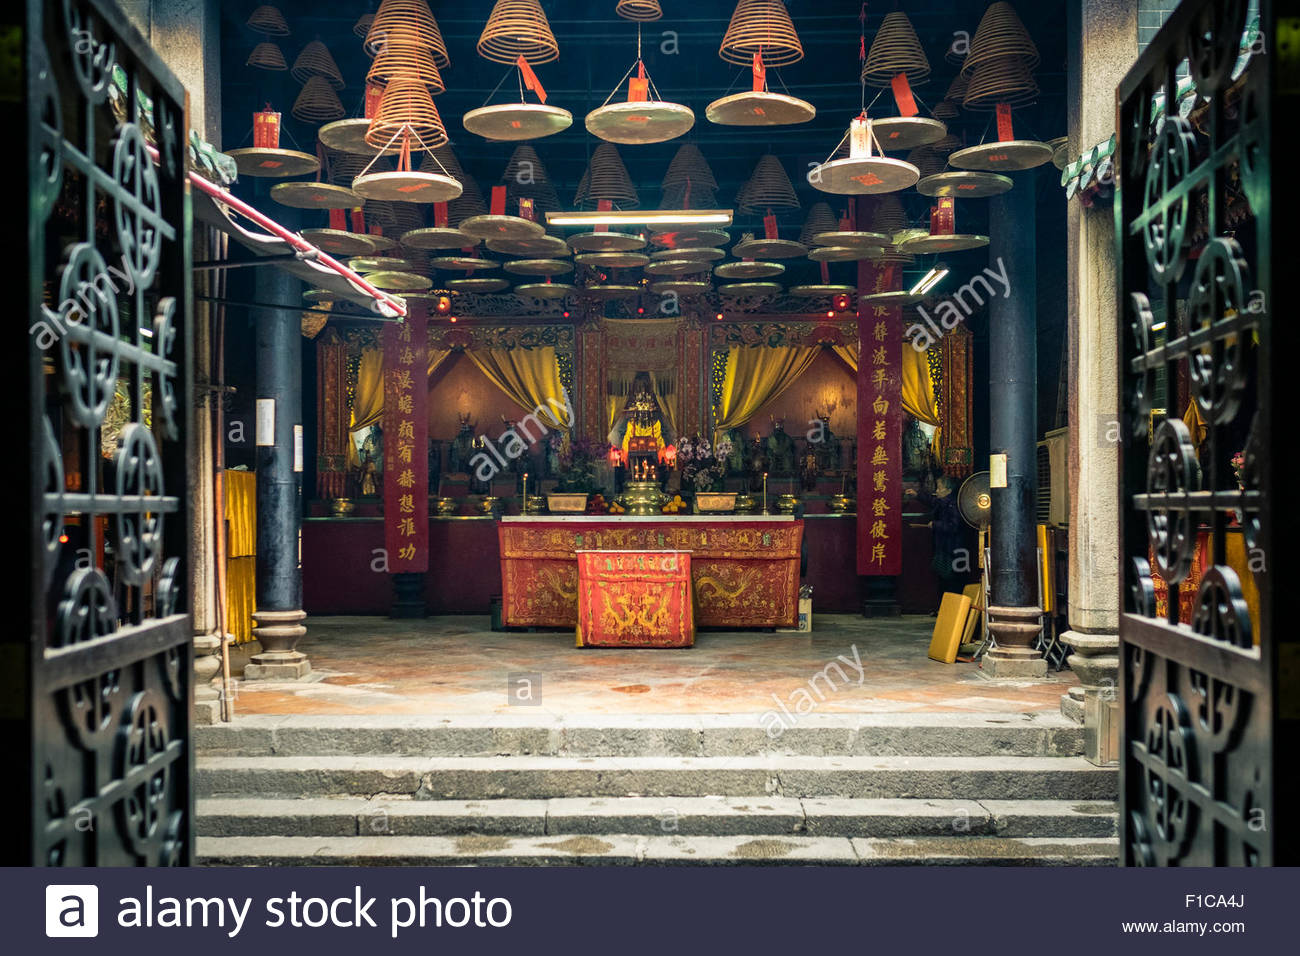 Shing Wong Temple altar at Tin Hau Temple, Yau Ma Tei, Kowloon, Hong Kong, China - Stock Image